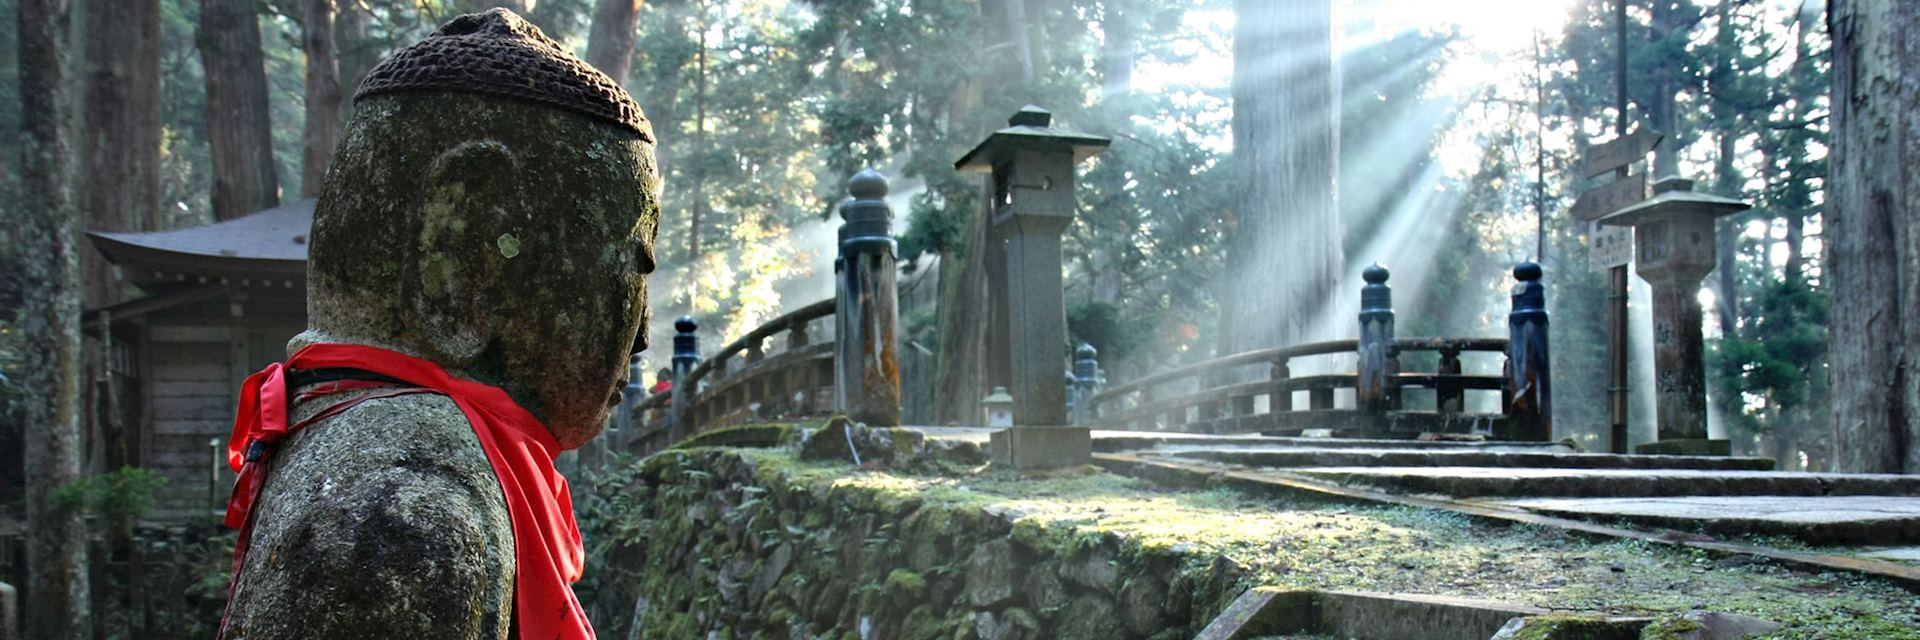 Okunoin Cemetery on Mount Koya is the largest in Japan